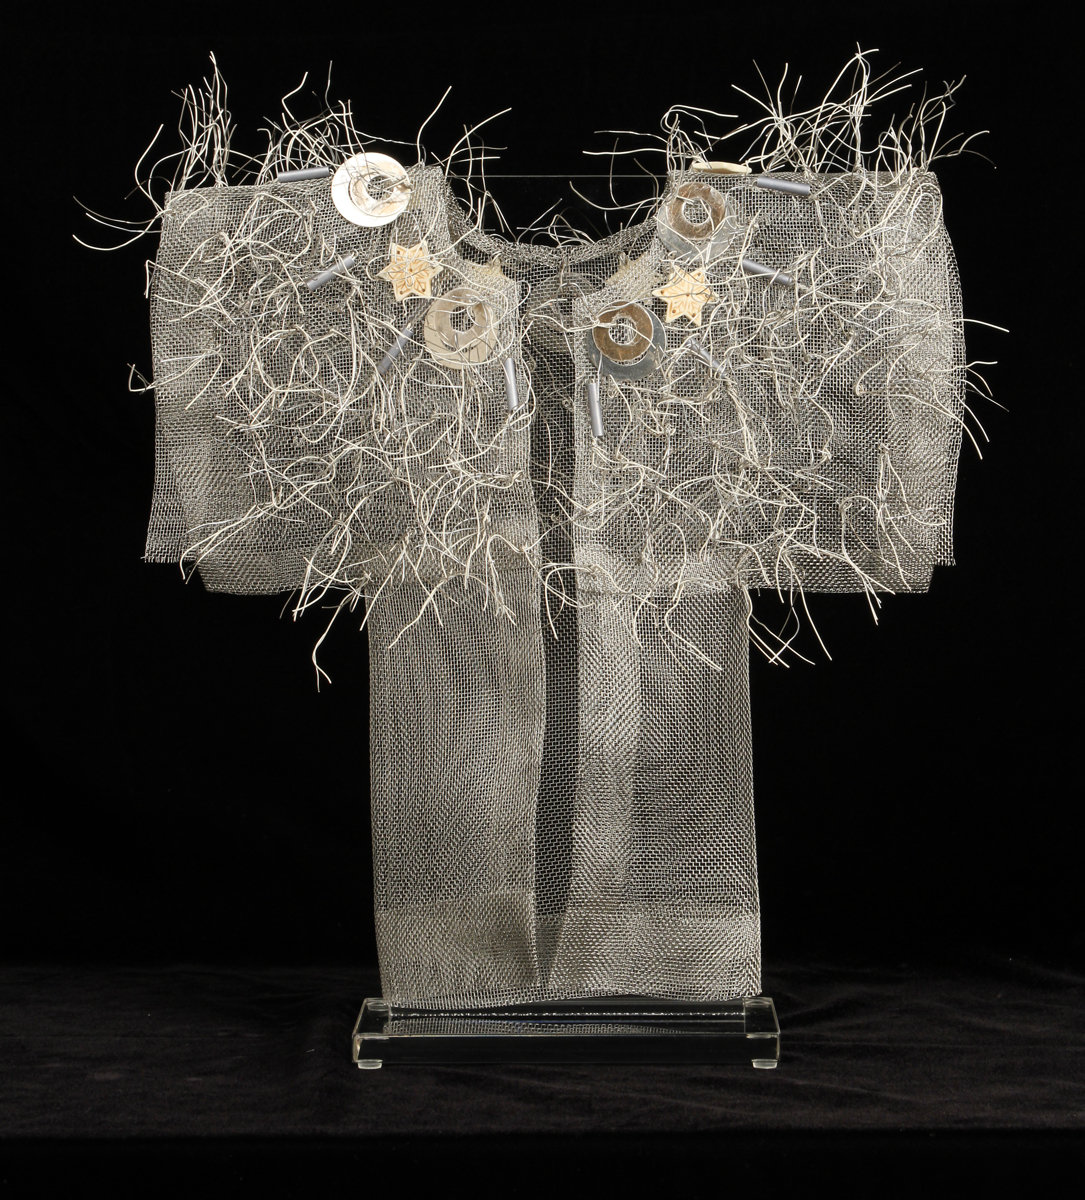 Winter Kimono by Susan McGehee (Metal Sculpture)